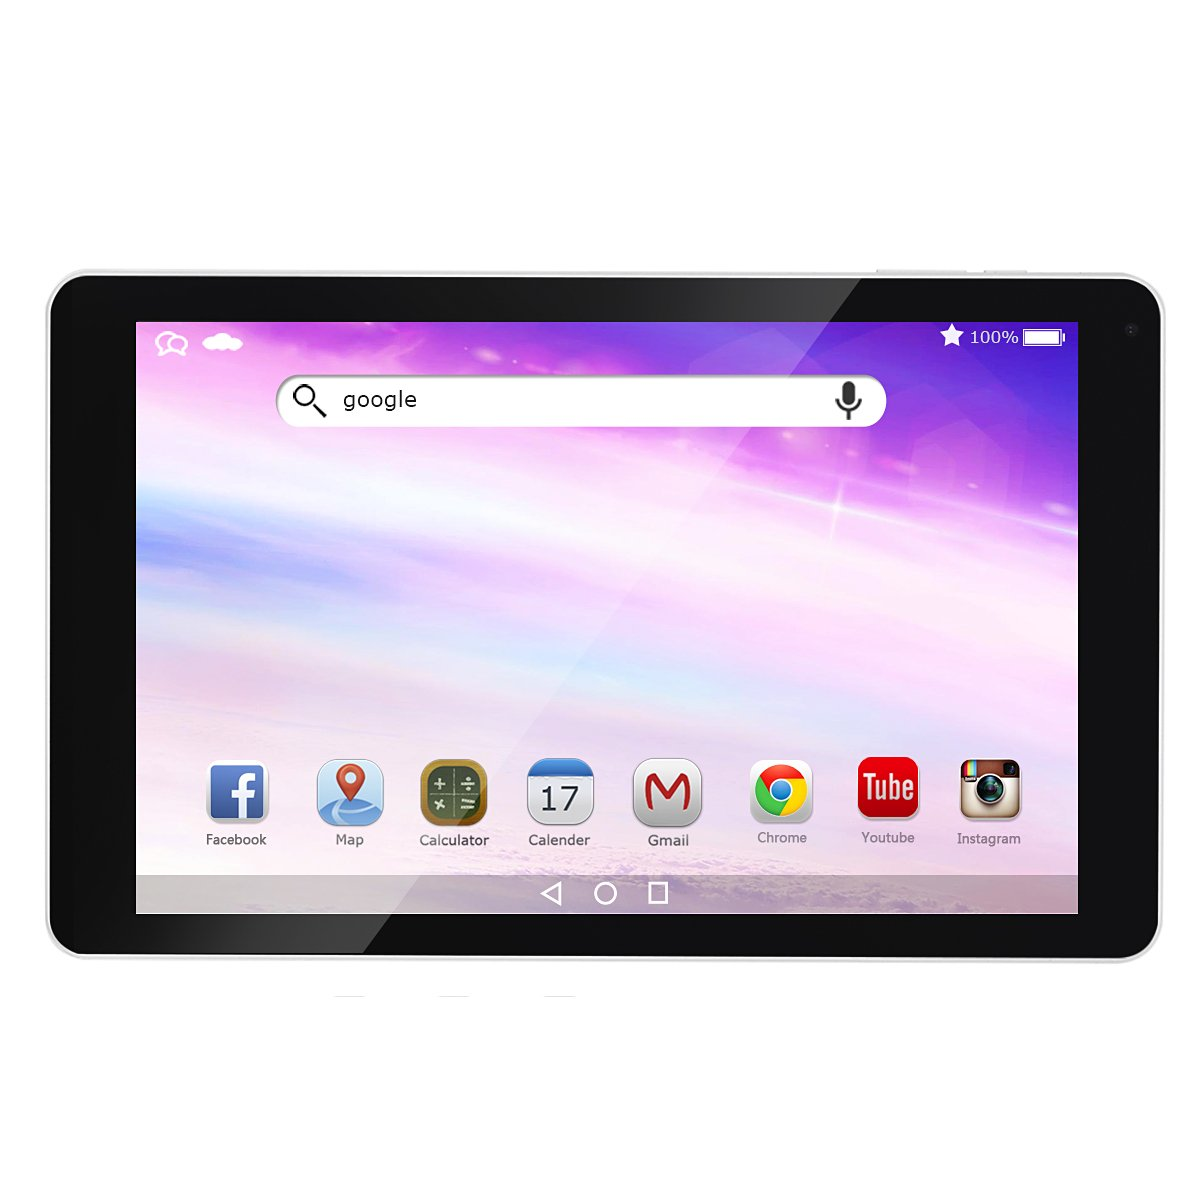 AOSON R102 10-Inch Android 6.0 Marshmallow MTK8163A-B Quad Core Tablet PC 1GB RAM 16GB internal Storage 1280x800 IPS Touch Screen Dual Camera Wi-Fi Bluetooth White rear by Aoson